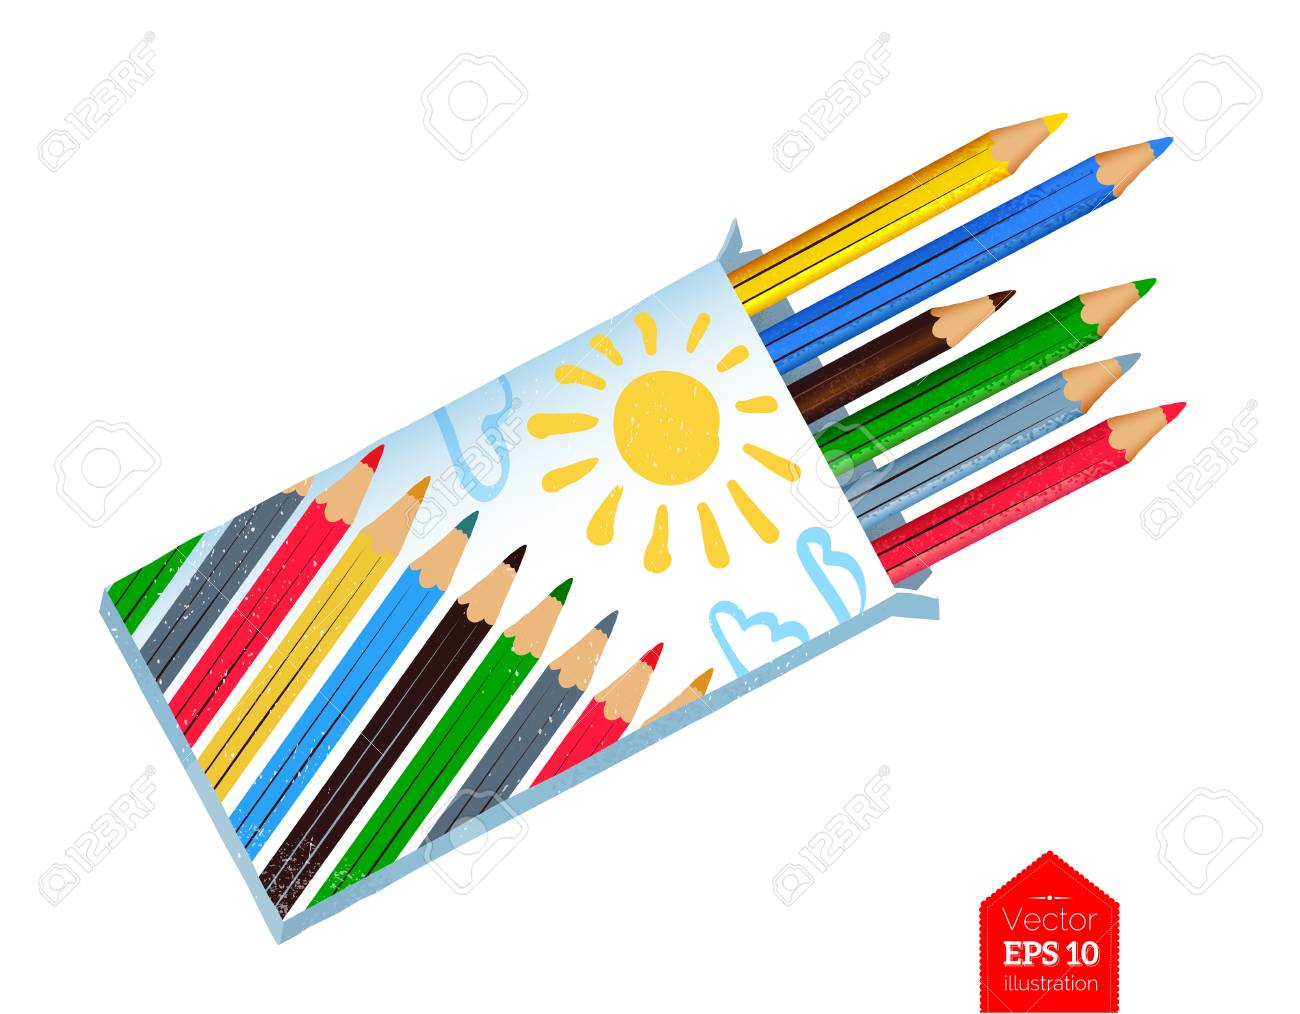 Top view illustration of color pencils - 100068649